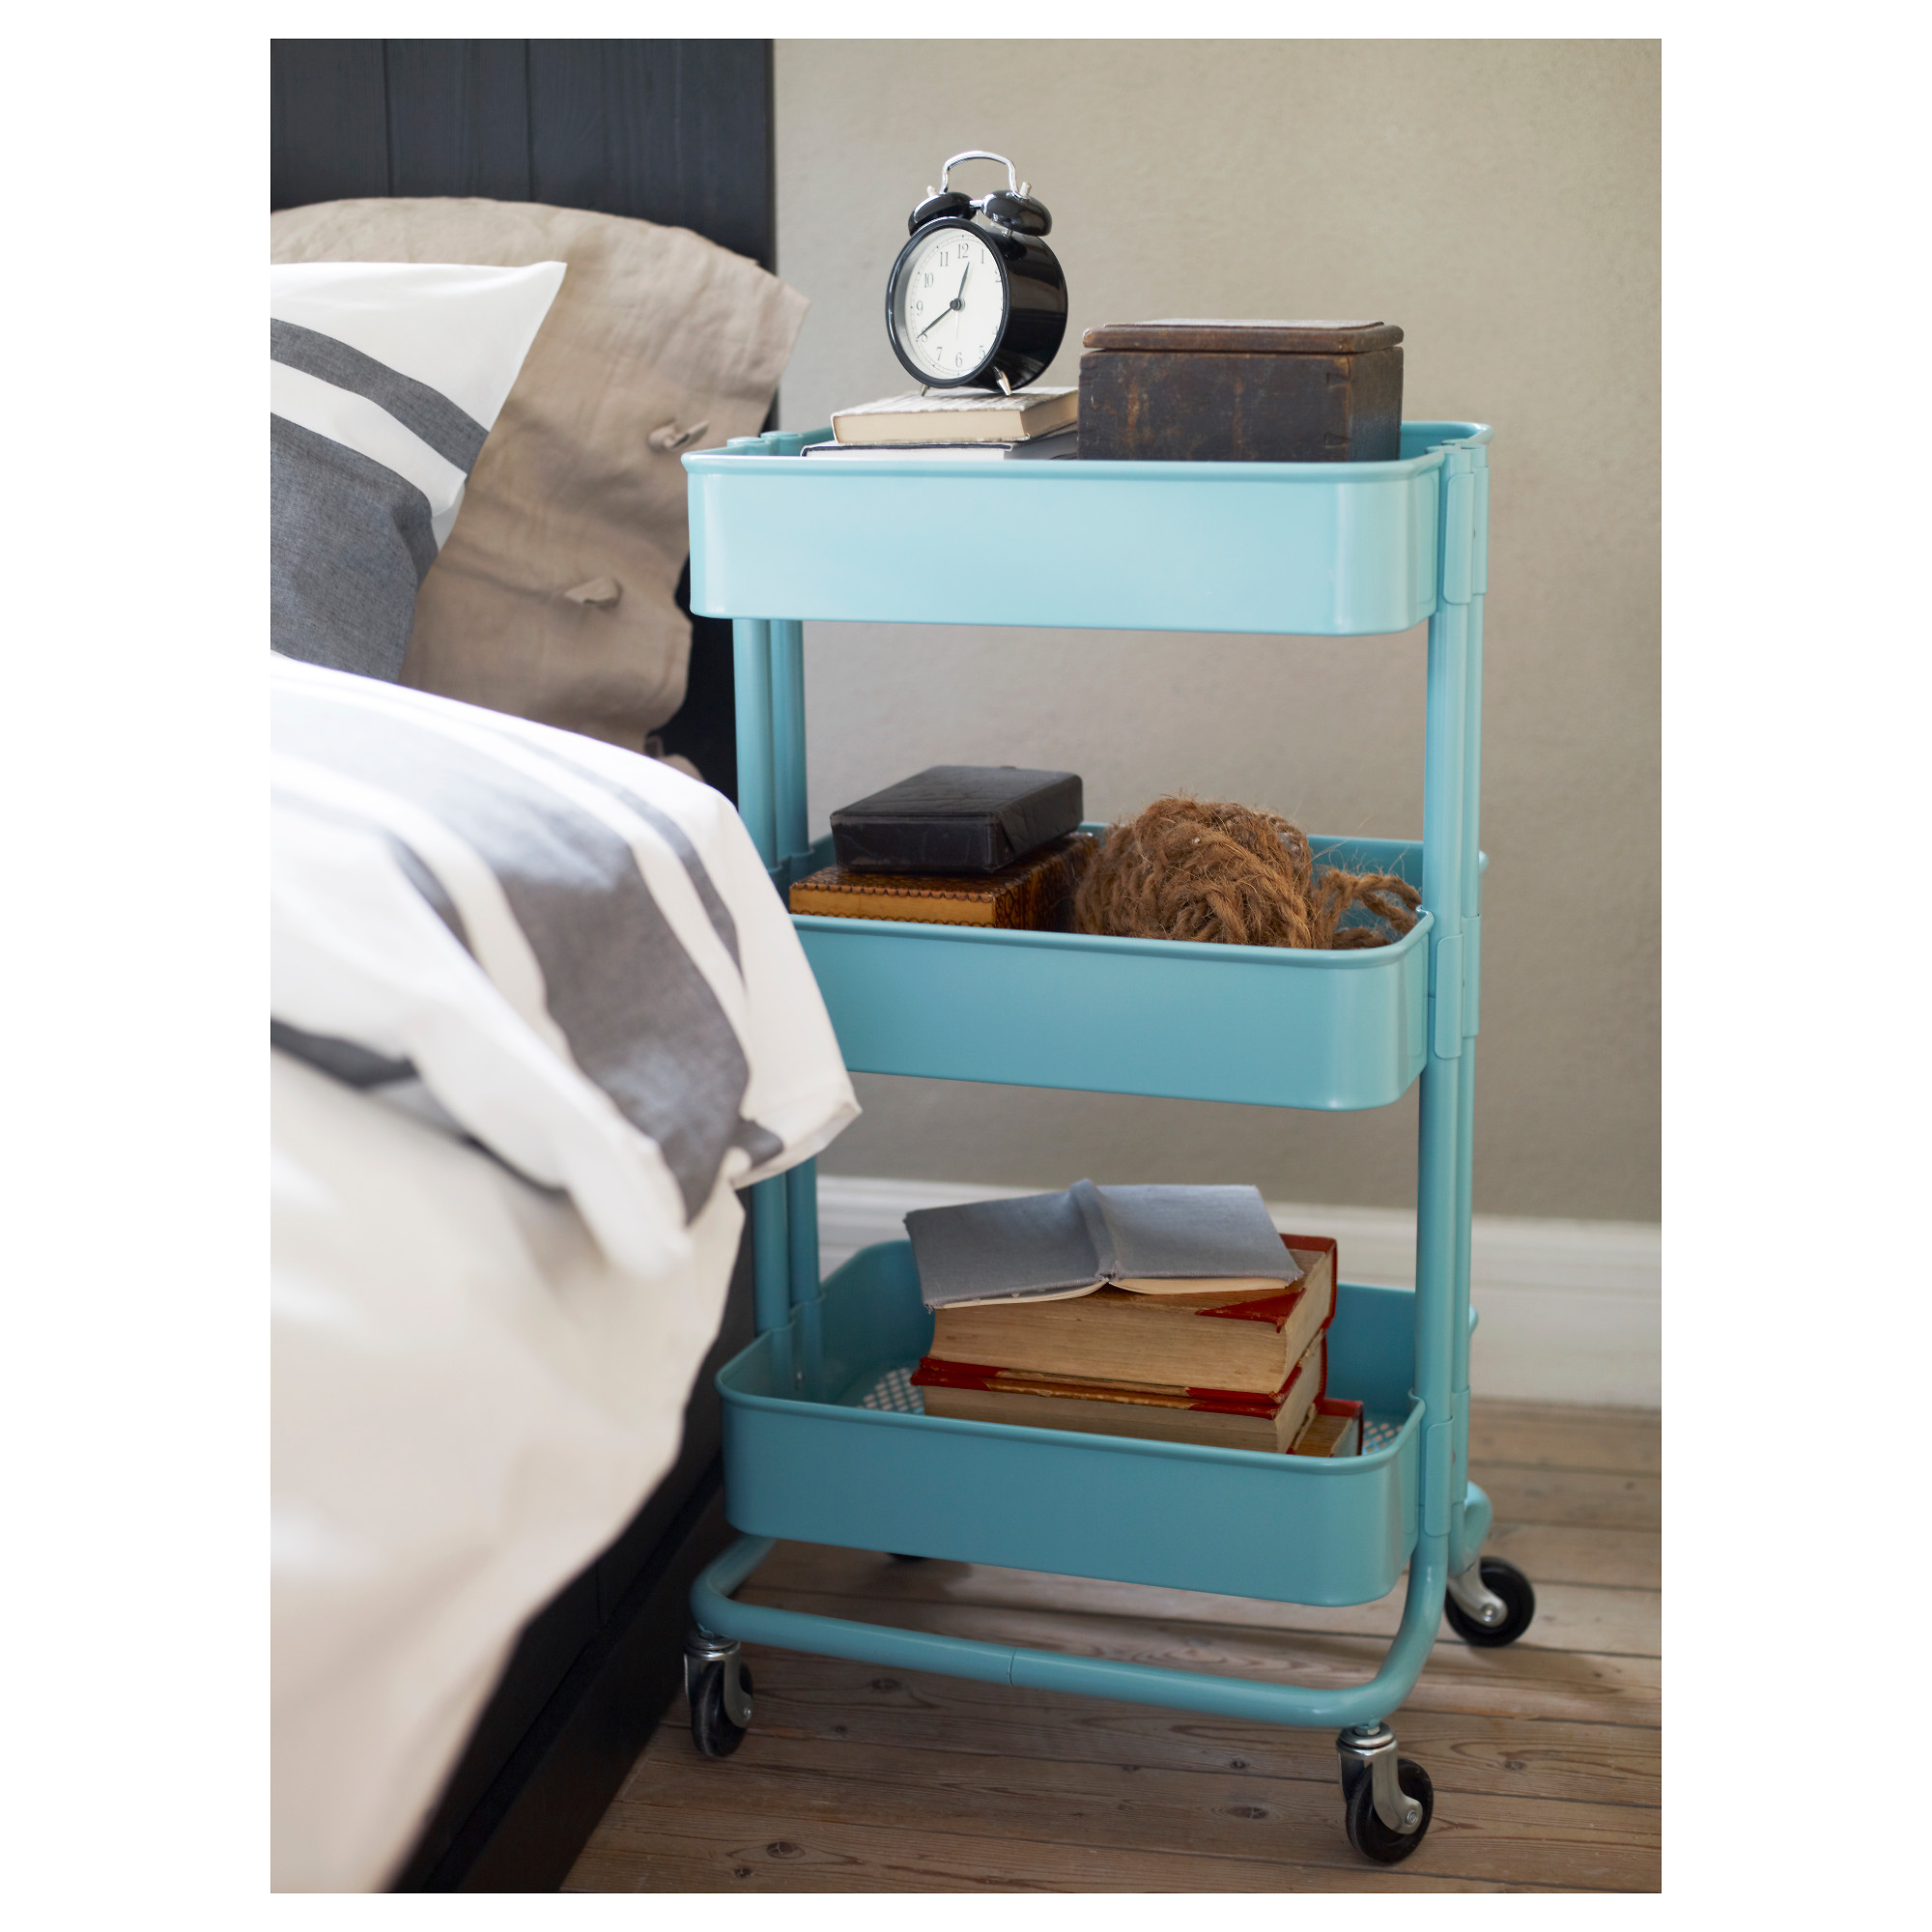 An IKEA Raskog Utility Cart Used As A Bedside Table.